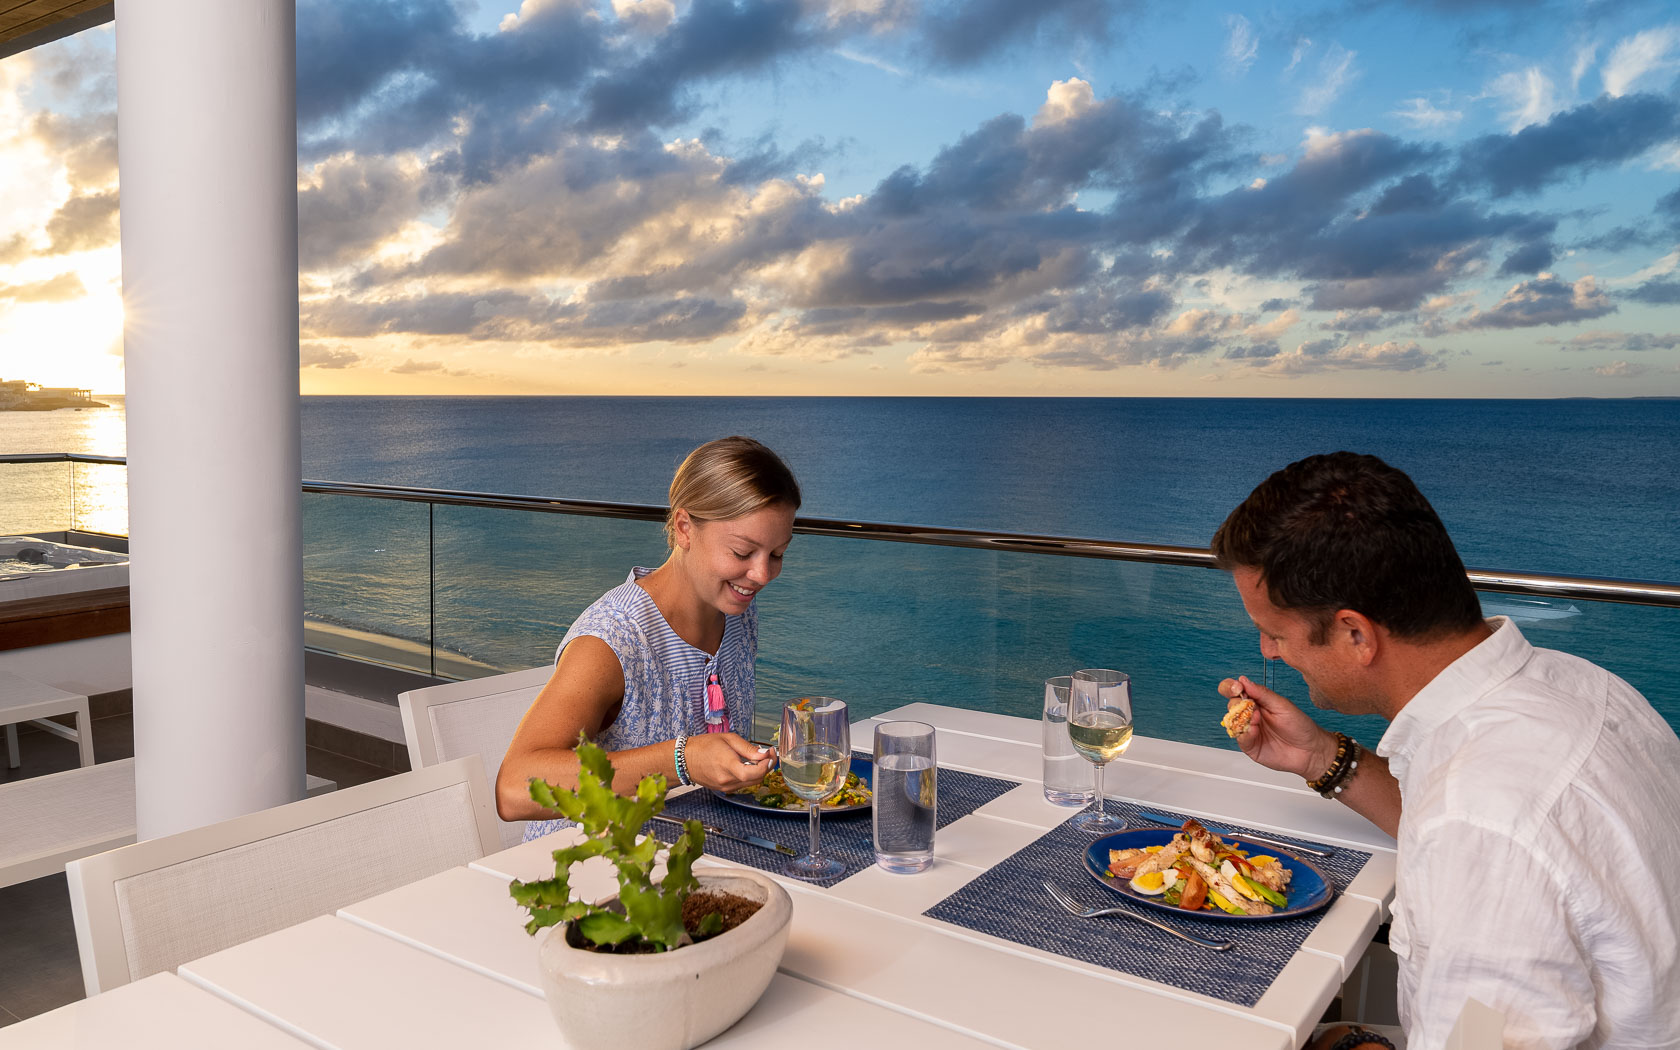 couple eating dinner on balcony with ocean views